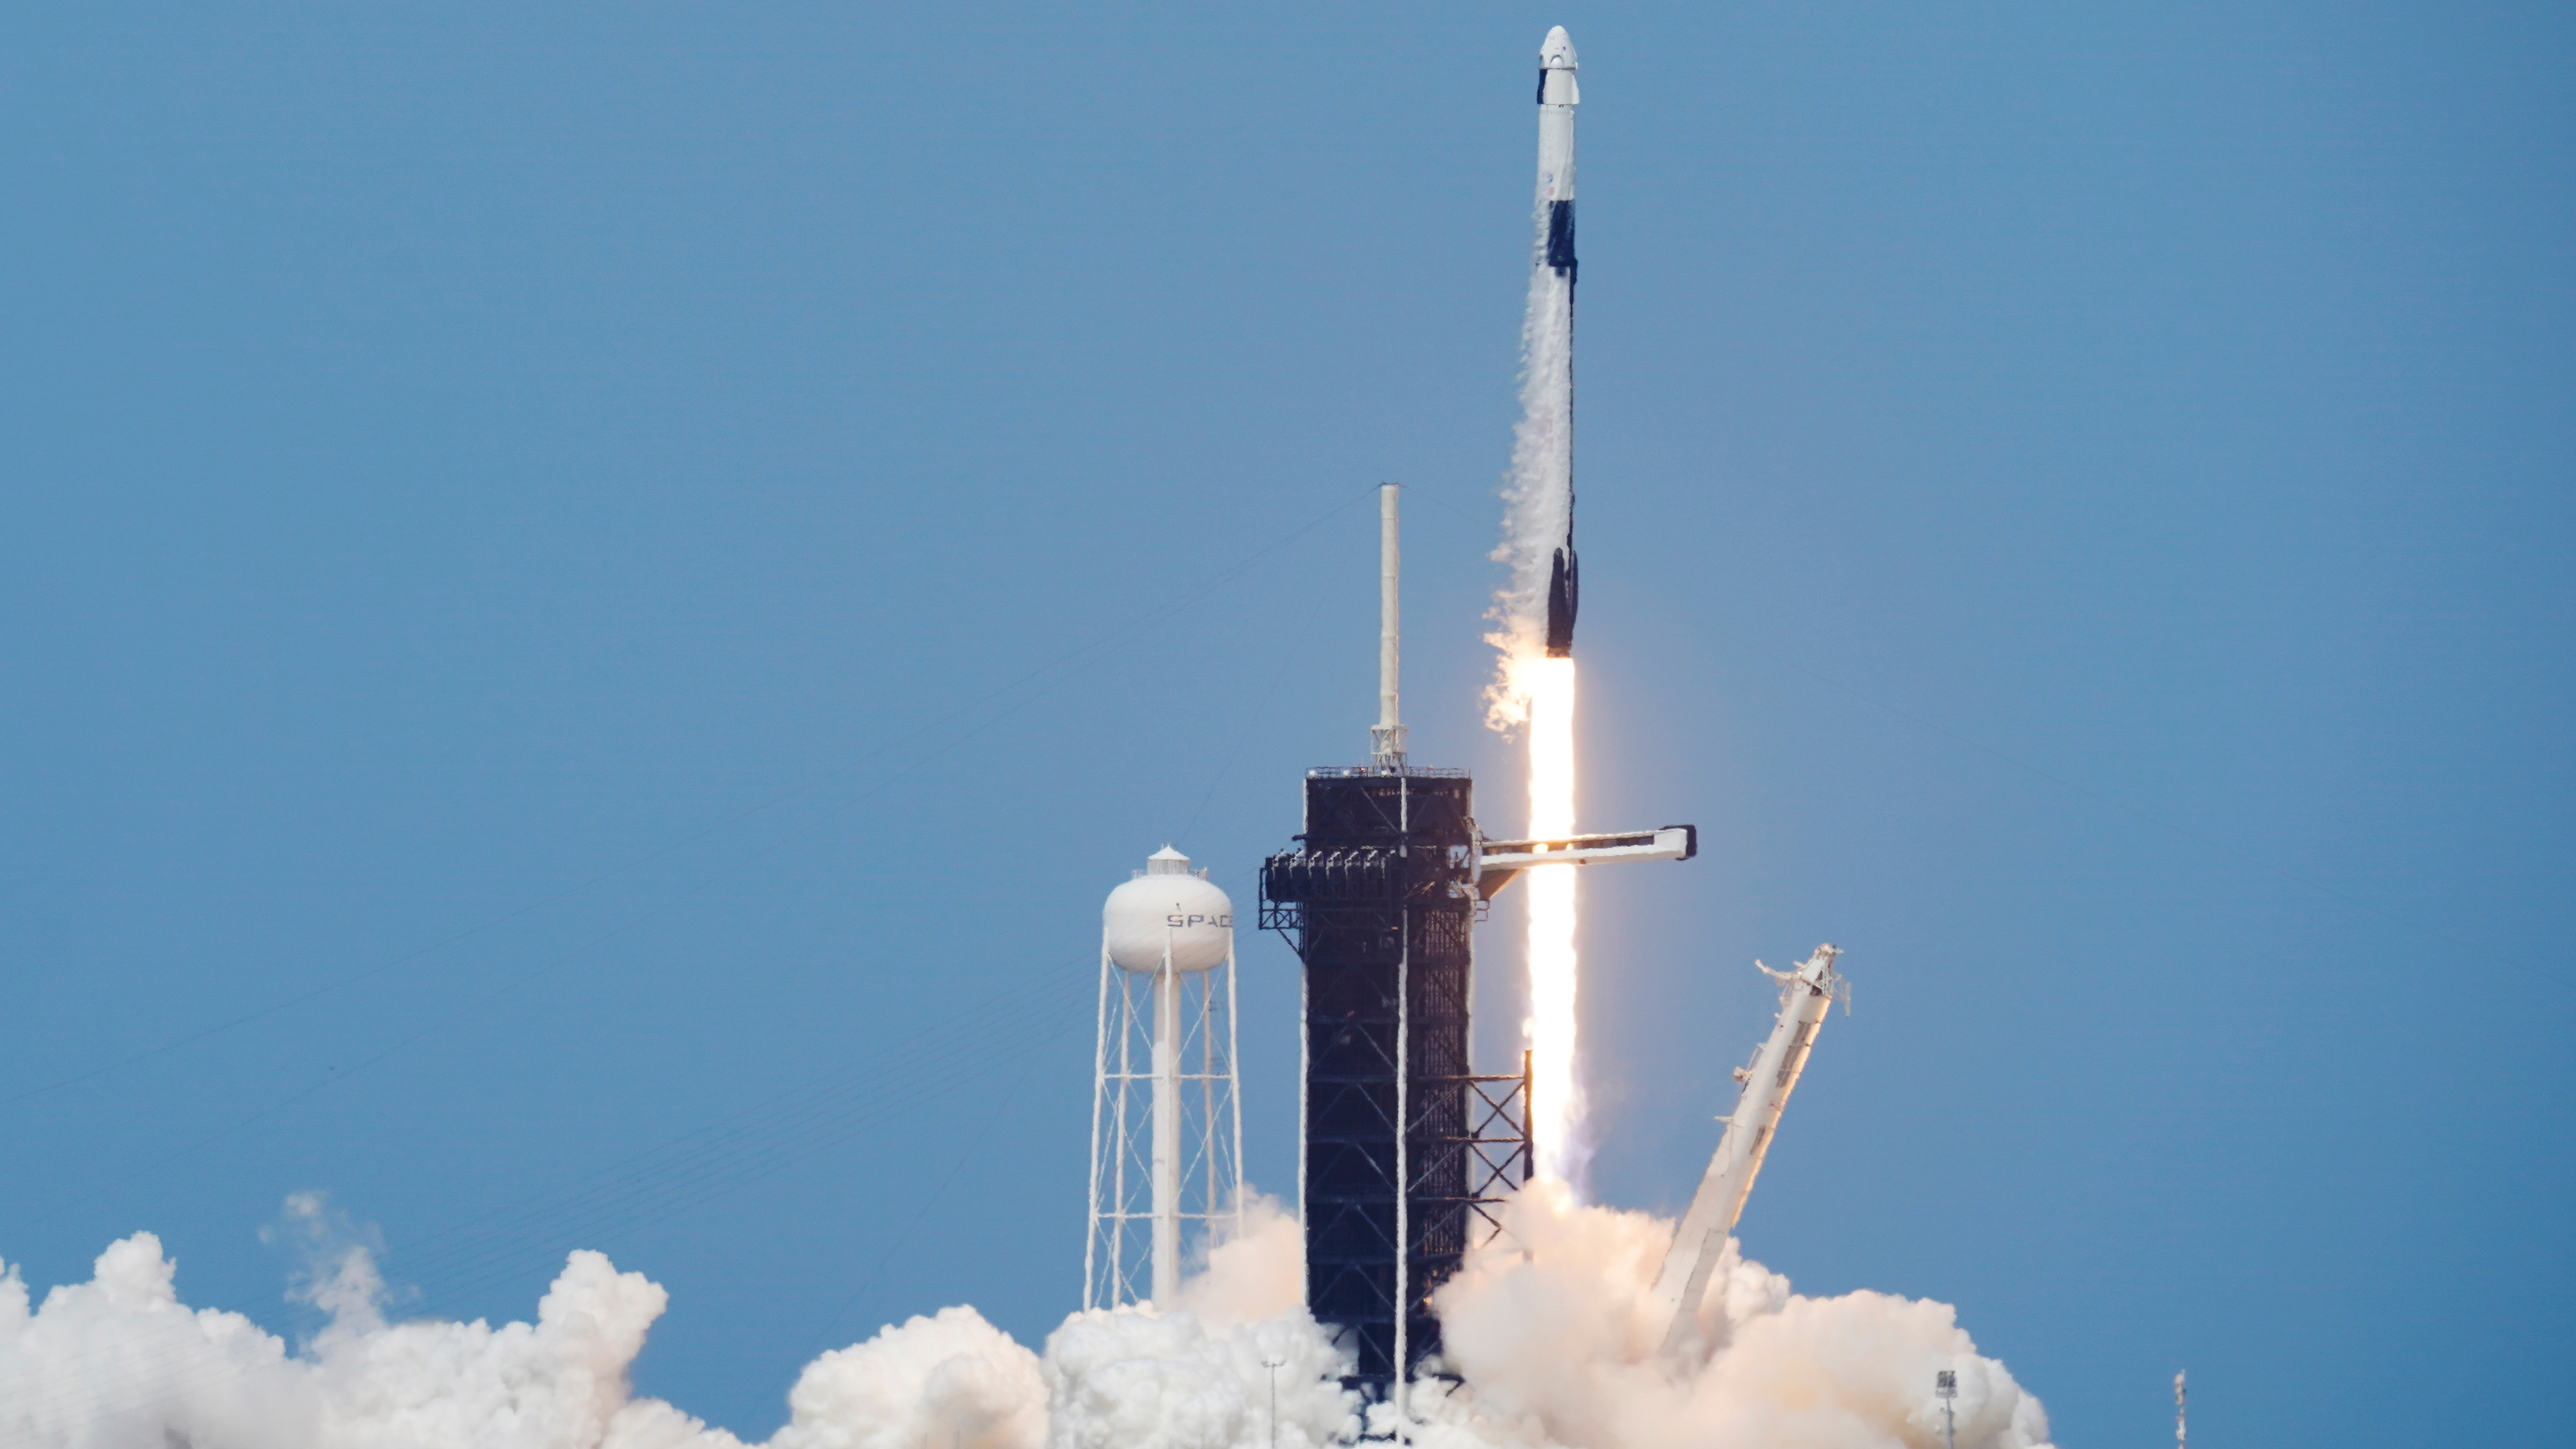 SpaceX launches Crew Dragon rocket successfully 4496x2529